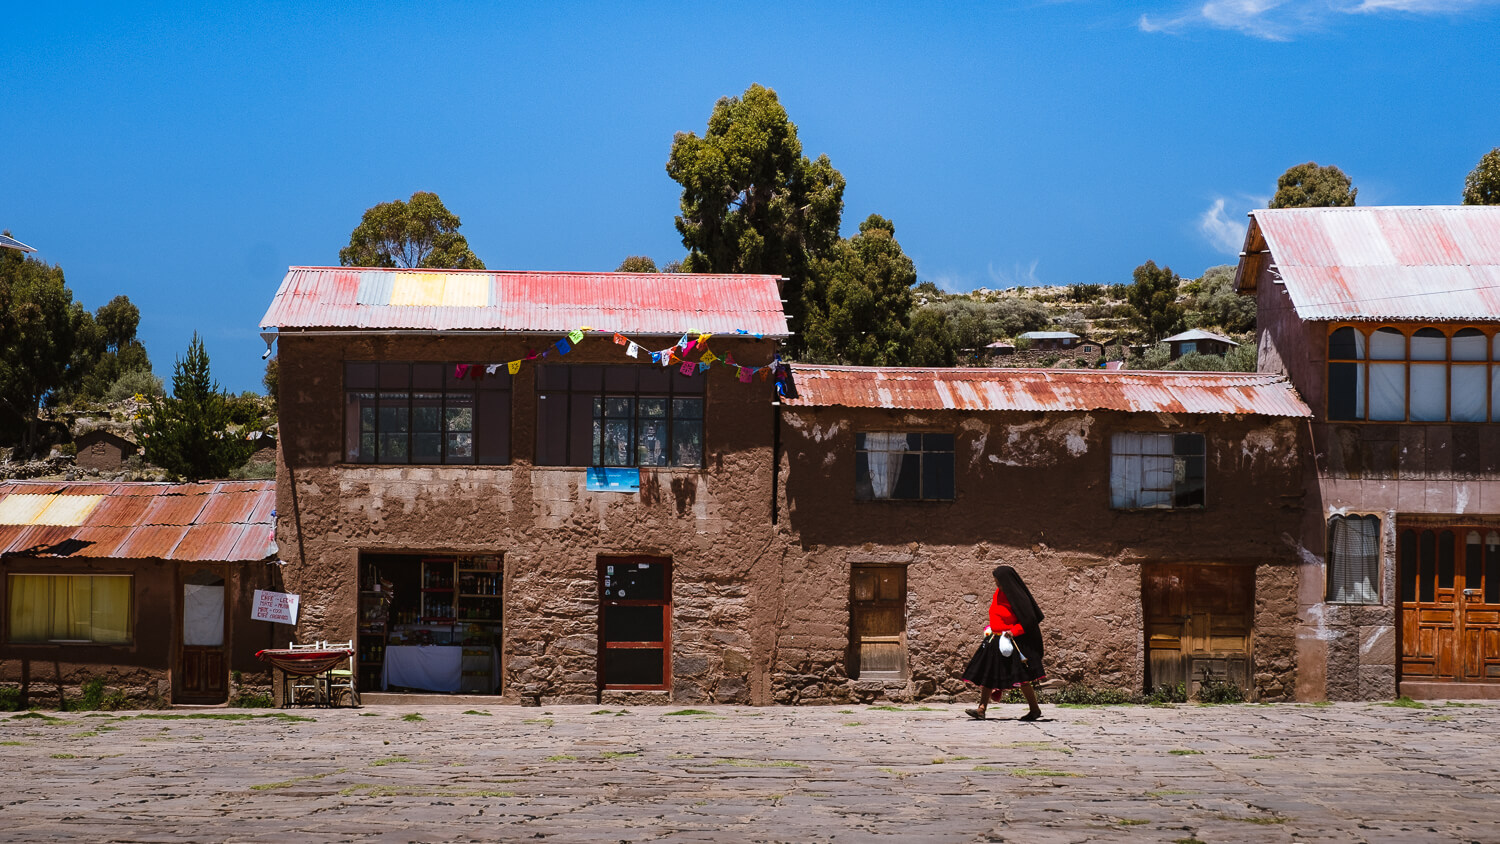 """A woman in the main square, Taquile Island. Travel photography and guide by © Natasha Lequepeys for """"And Then I Met Yoko"""". #peru #laketiticaca #homestay #photoblog #travelblog #fujifilm"""